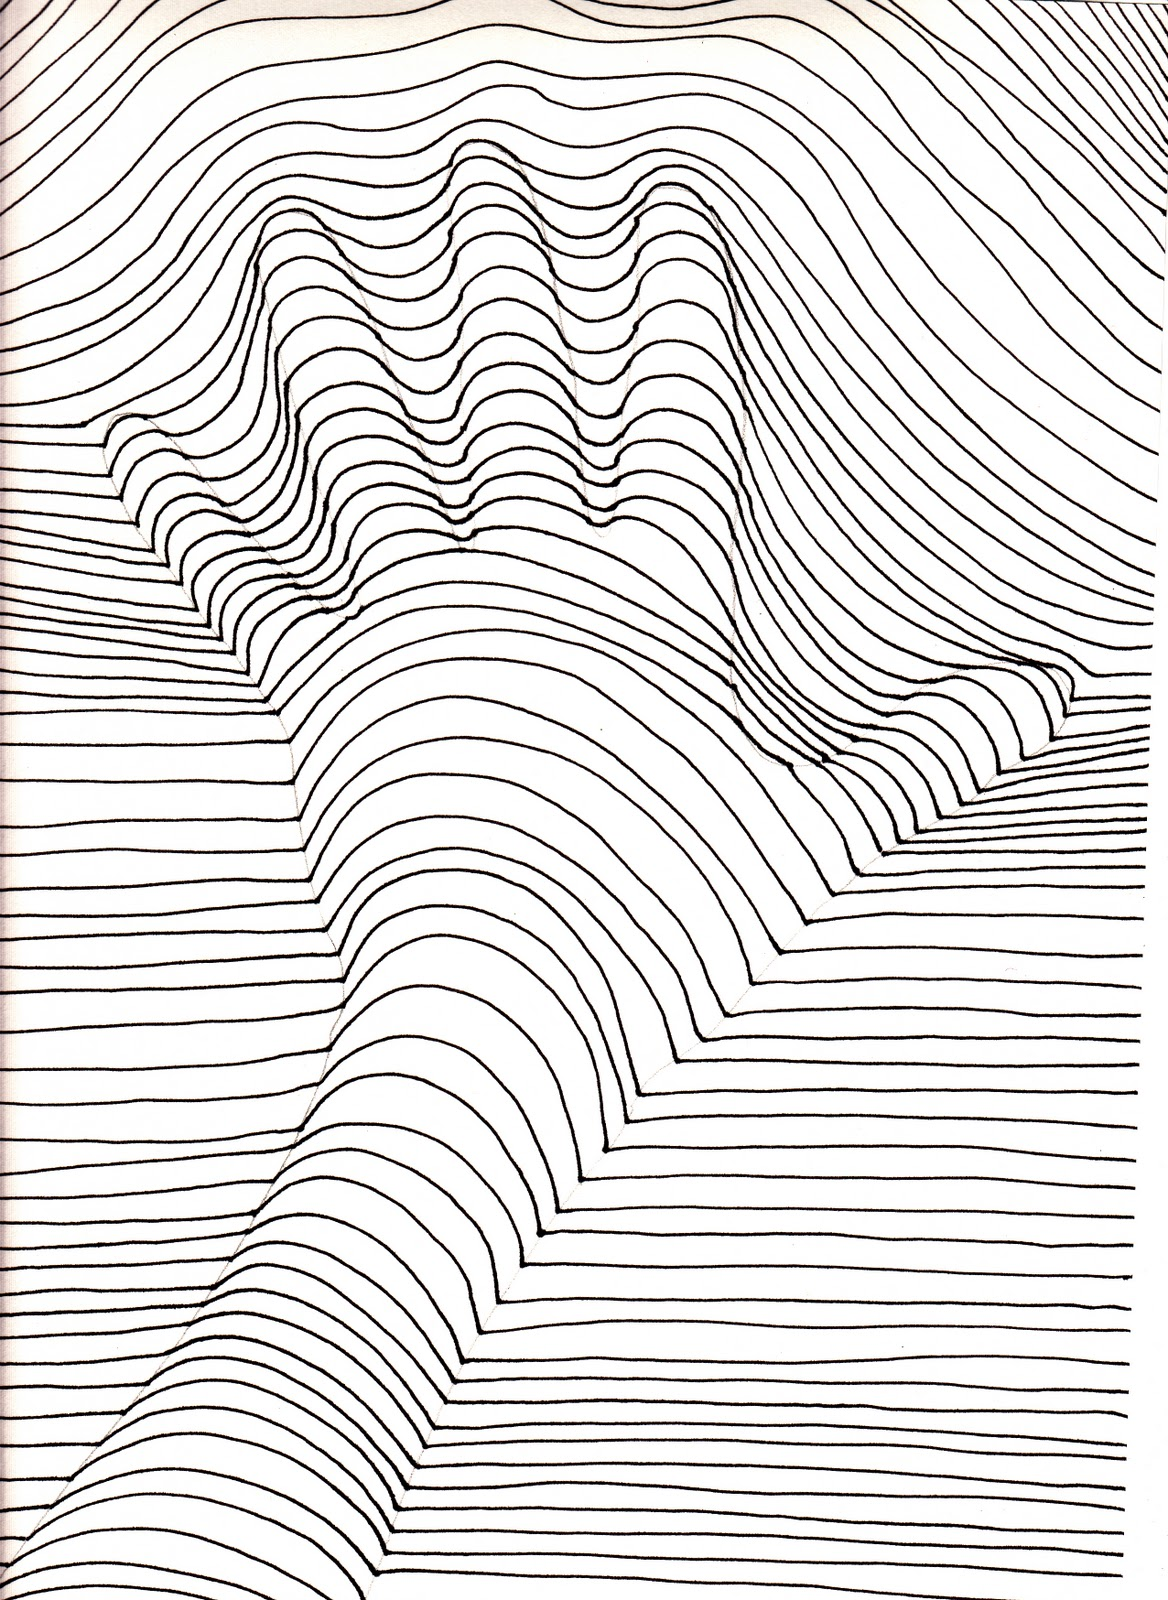 Simple Line Art Example : The creative spirit op art hands that pop